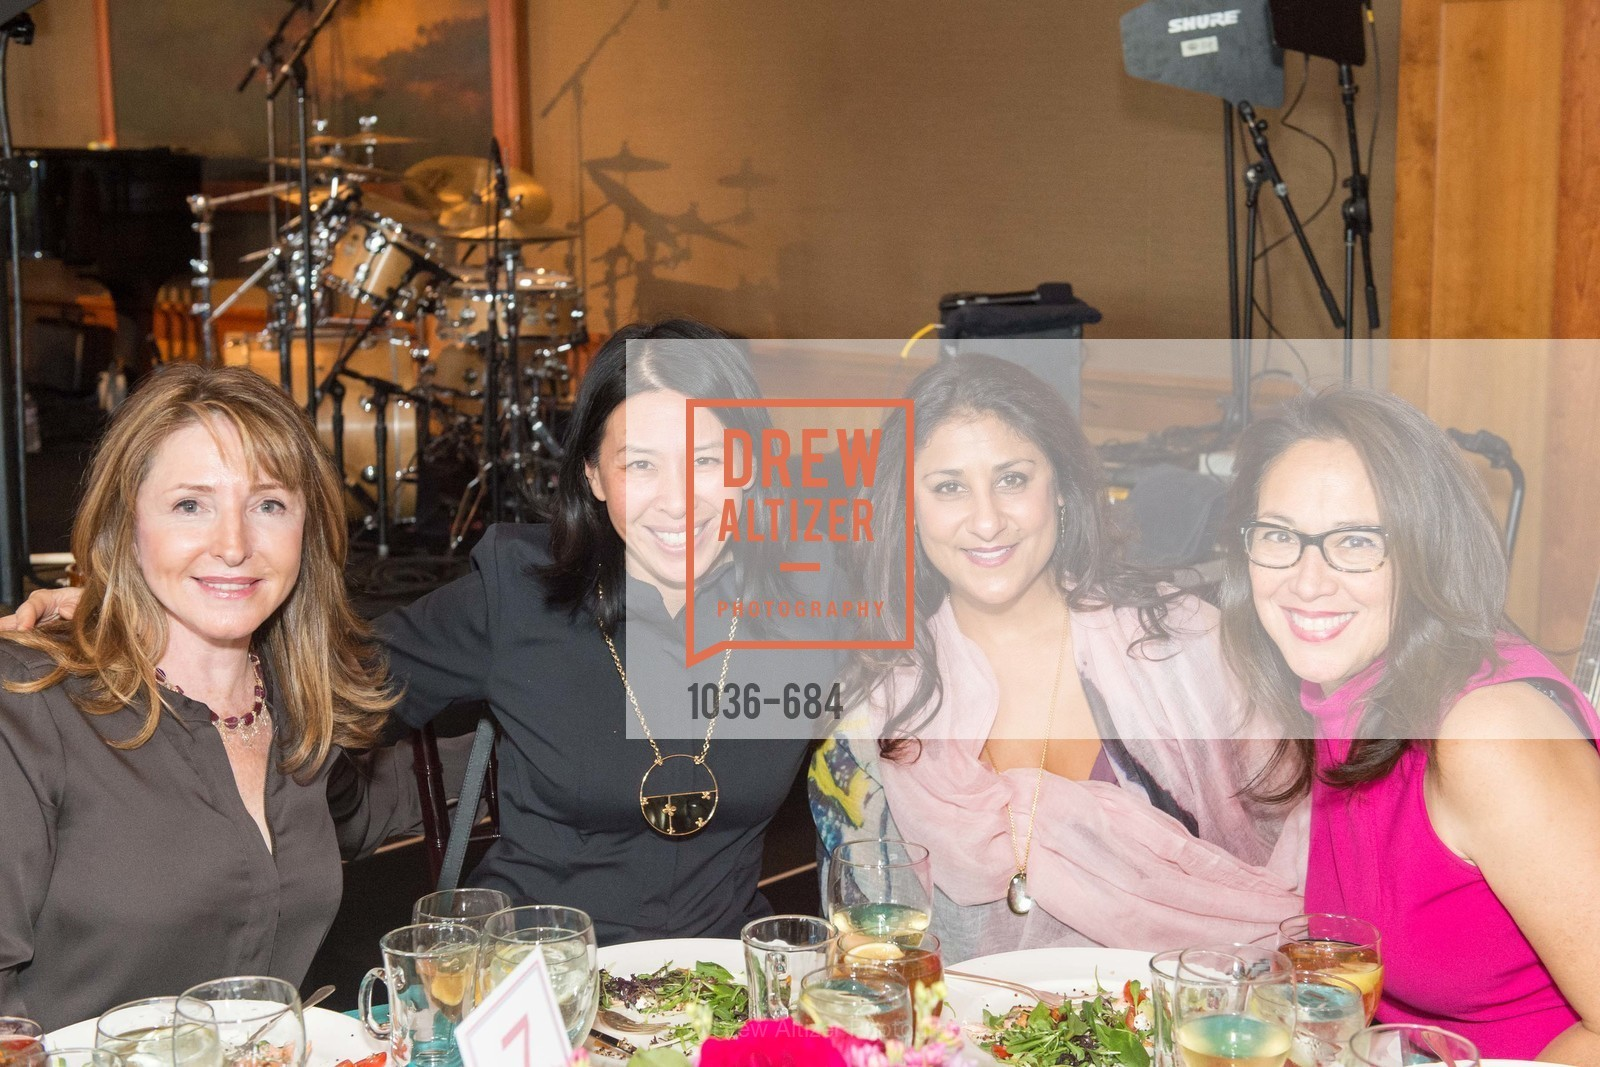 Rona Thompson, Lisa O'Kelly, Anu Khatod, Tiger Bachler, Under One Umbrella, Sharon Heights Golf and Country Club, January 13th, 2016,Drew Altizer, Drew Altizer Photography, full-service event agency, private events, San Francisco photographer, photographer California